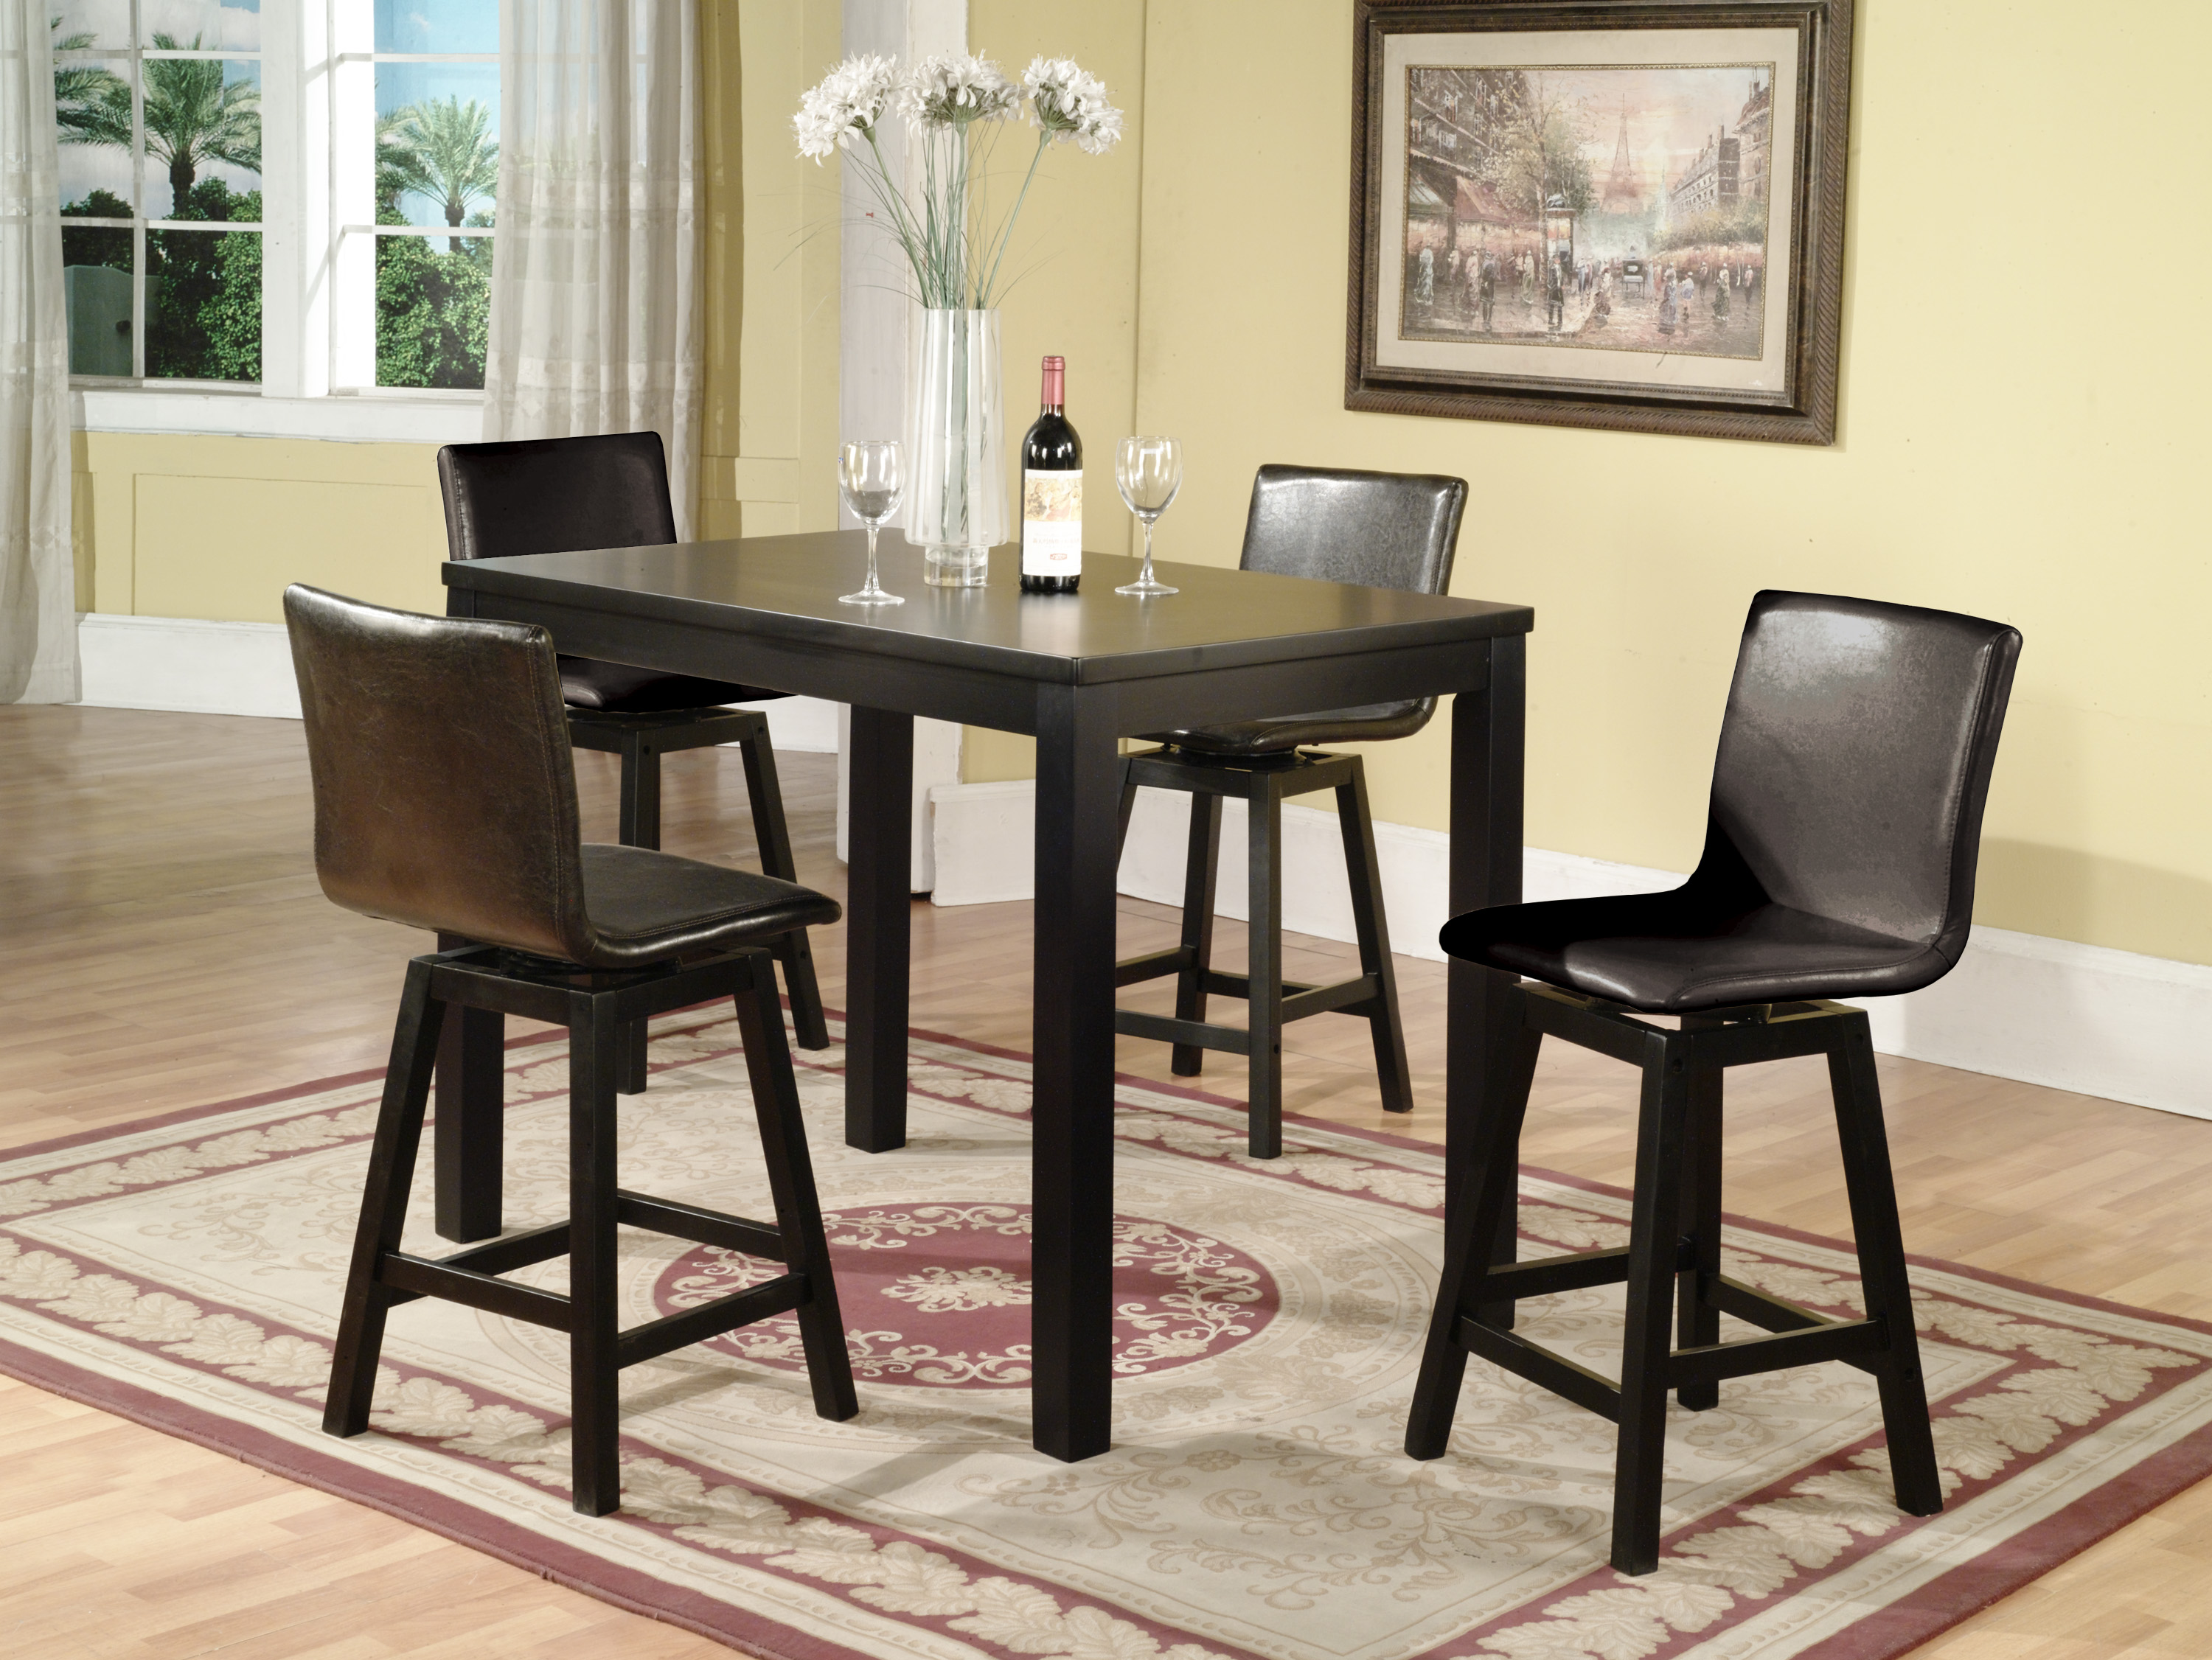 Counter height dinette sets homesfeed for Tall dinner table set